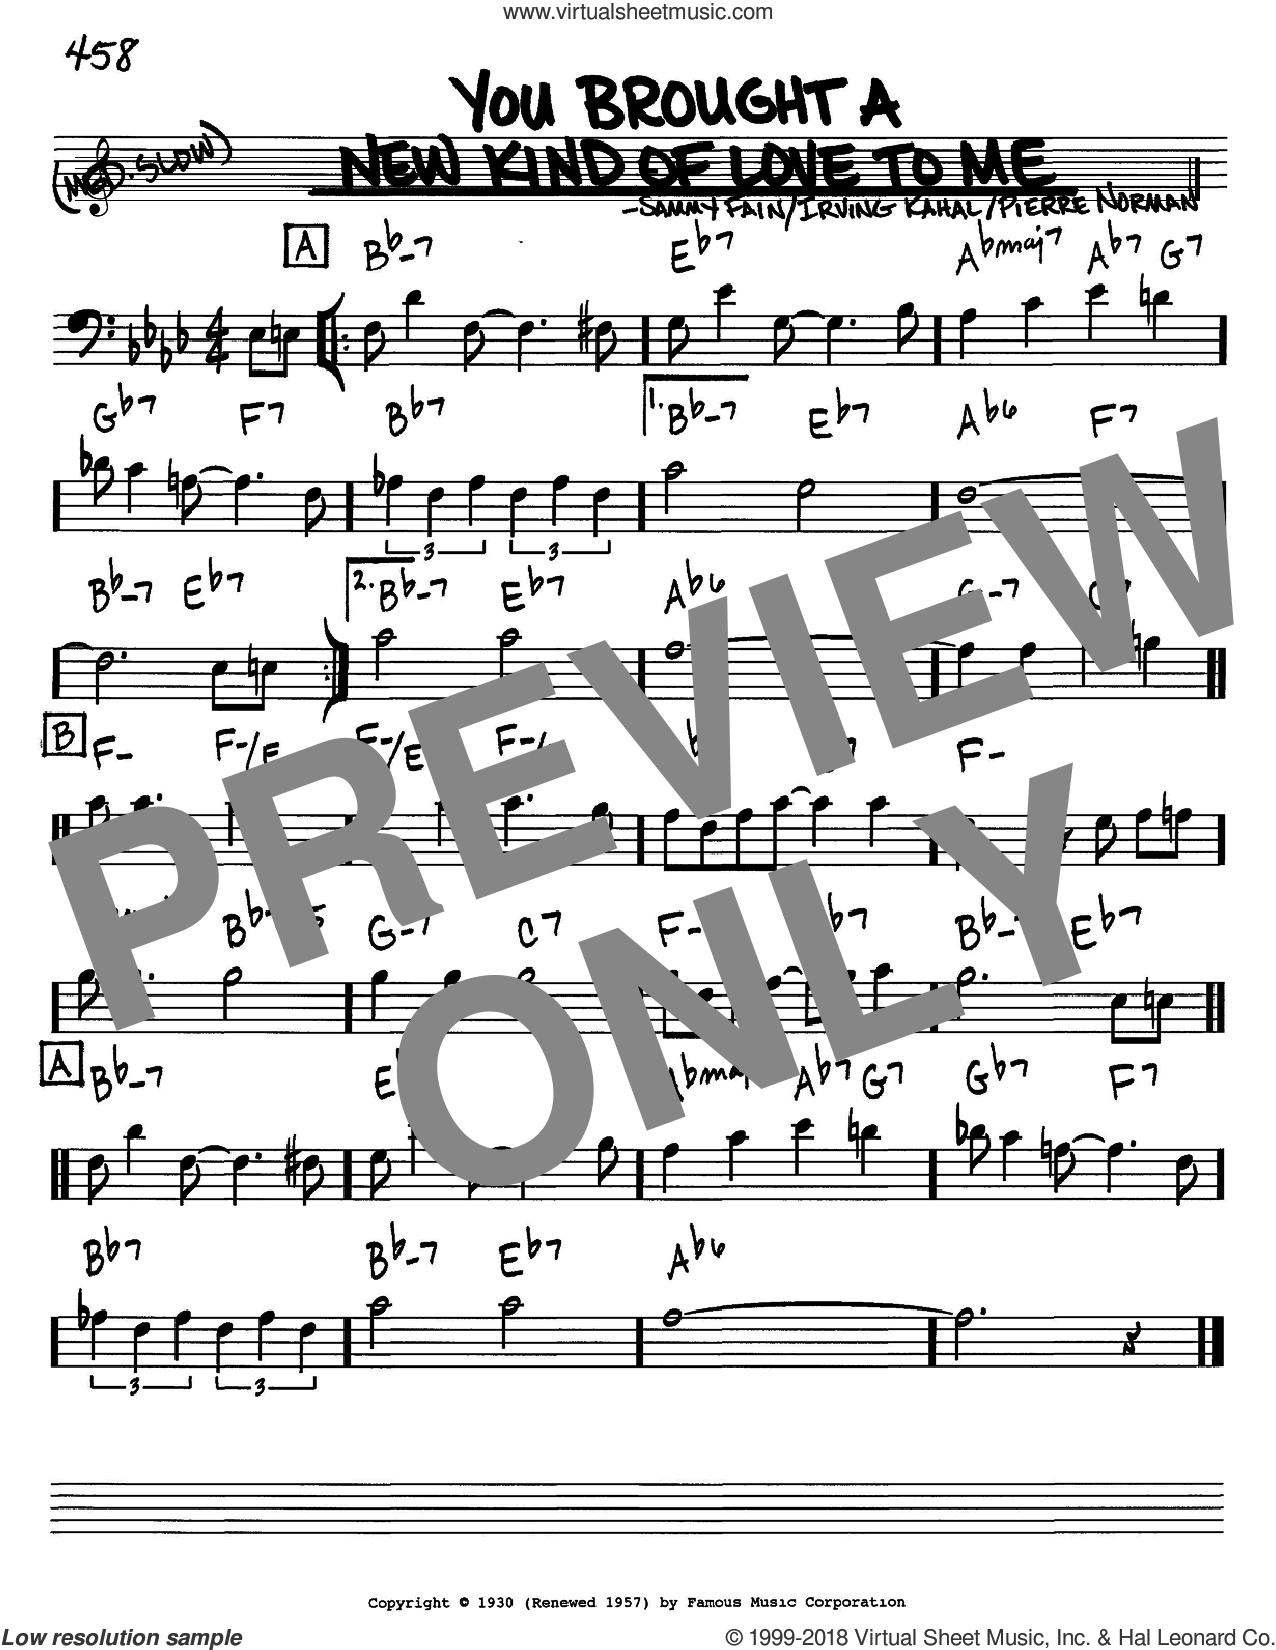 You Brought A New Kind Of Love To Me sheet music for voice and other instruments (Bass Clef ) by Sammy Fain, Frank Sinatra, Irving Kahal and Pierre Norman. Score Image Preview.